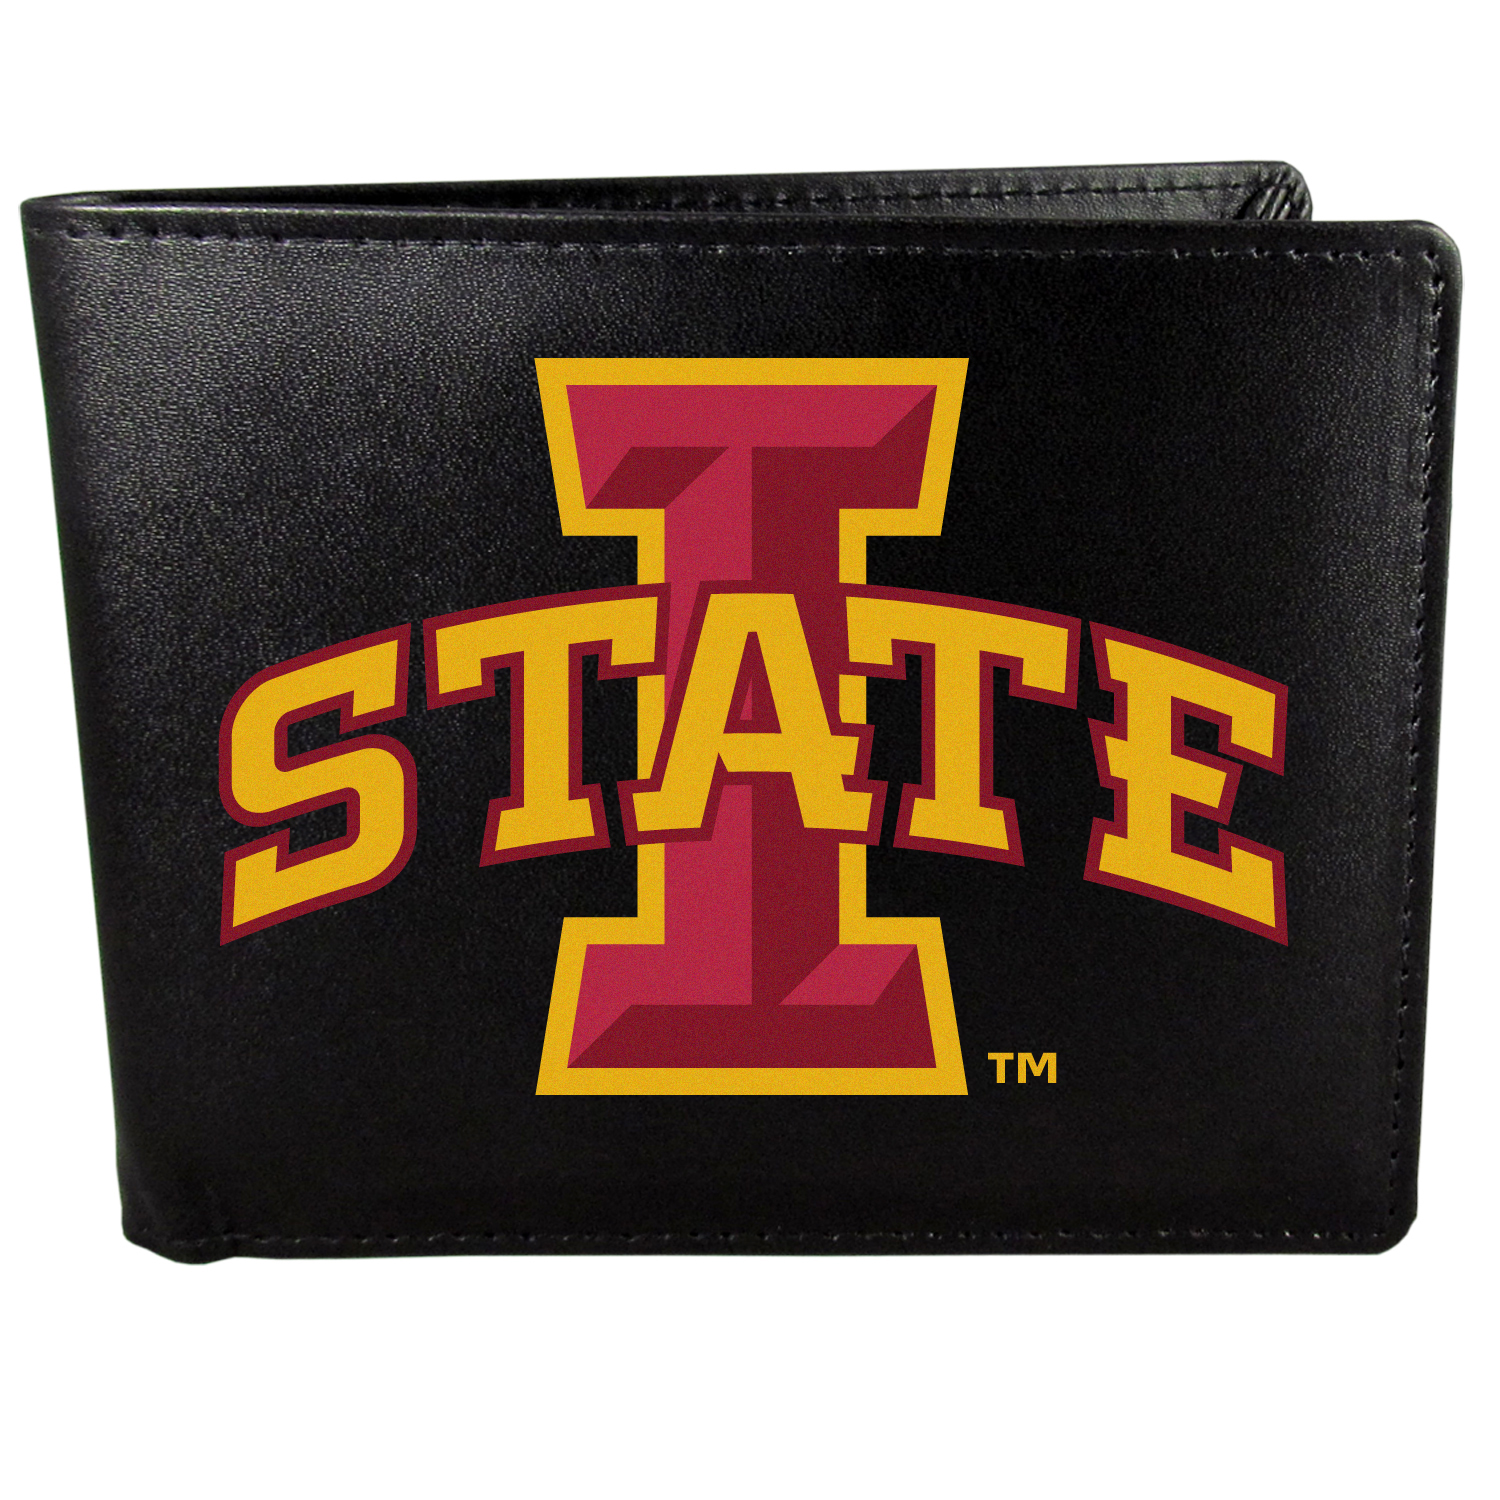 Iowa St. Cyclones Bi-fold Wallet Large Logo - Sports fans do not have to sacrifice style with this classic bi-fold wallet that sports the Iowa St. Cyclones?extra large logo. This men's fashion accessory has a leather grain look and expert craftmanship for a quality wallet at a great price. The wallet features inner credit card slots, windowed ID slot and a large billfold pocket. The front of the wallet features a printed team logo.